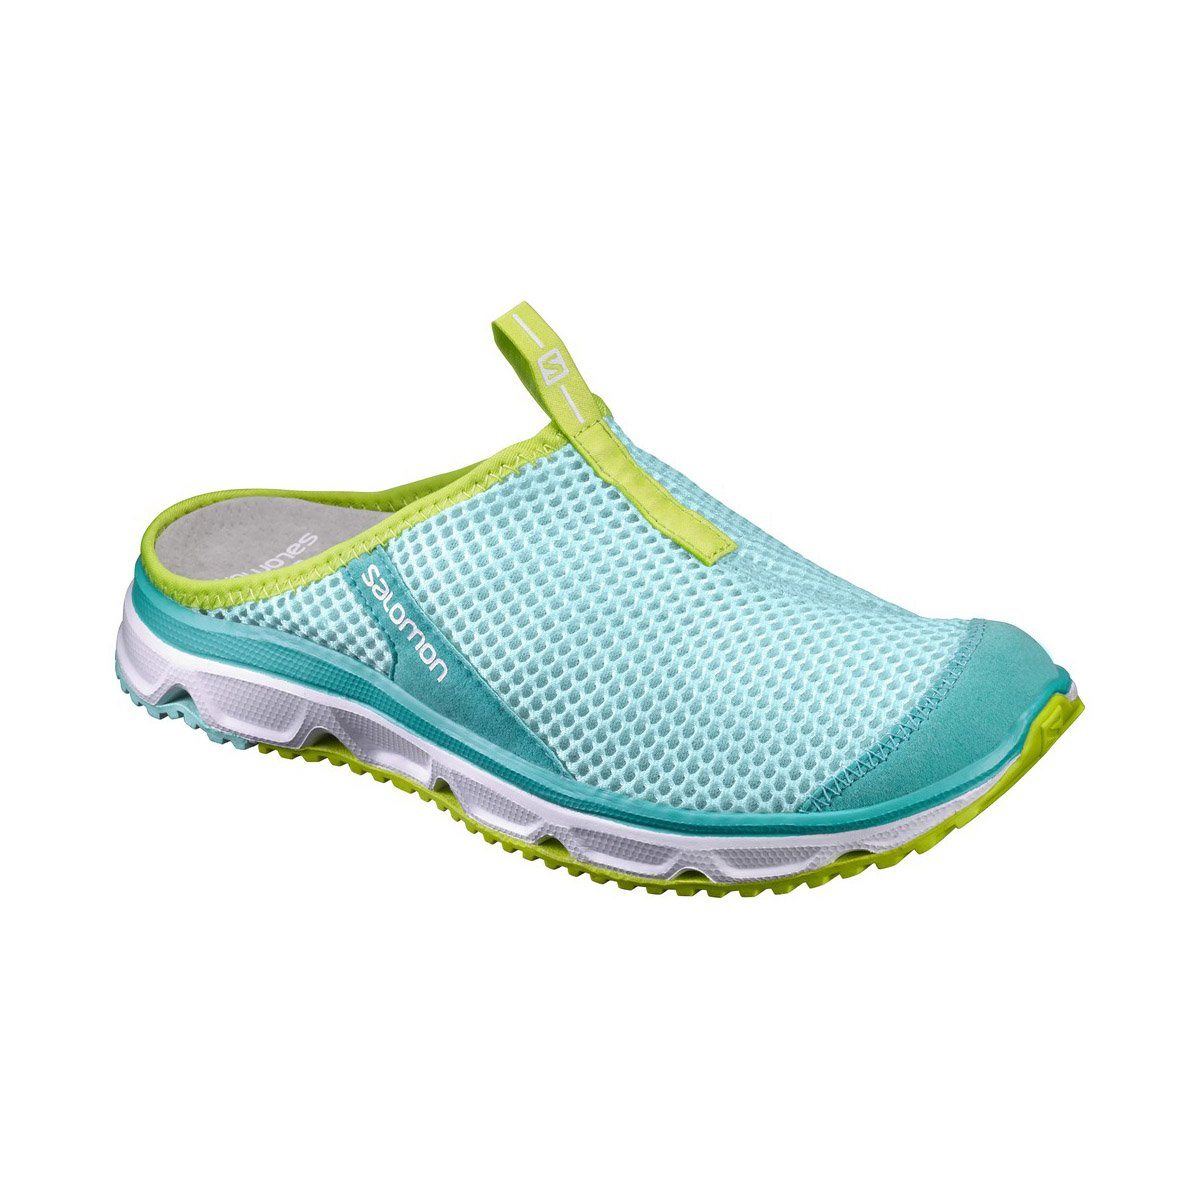 Pantofle Salomon RX SLIDE 3.0 W 392448